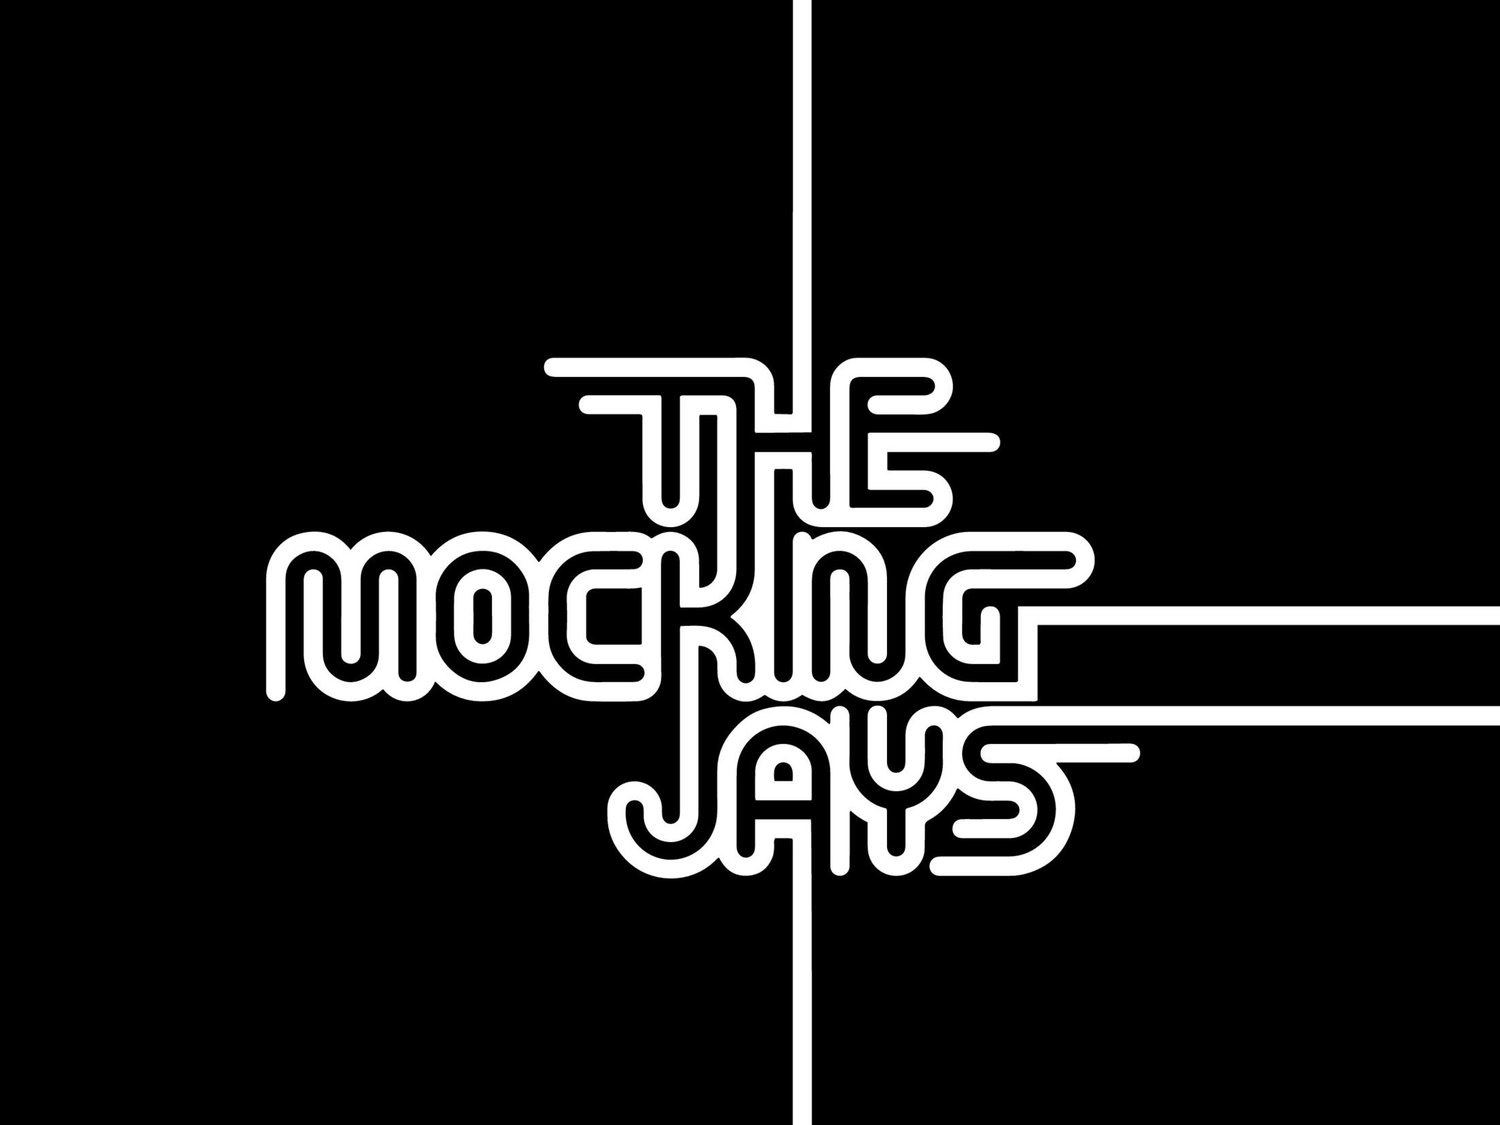 The Mocking Jays